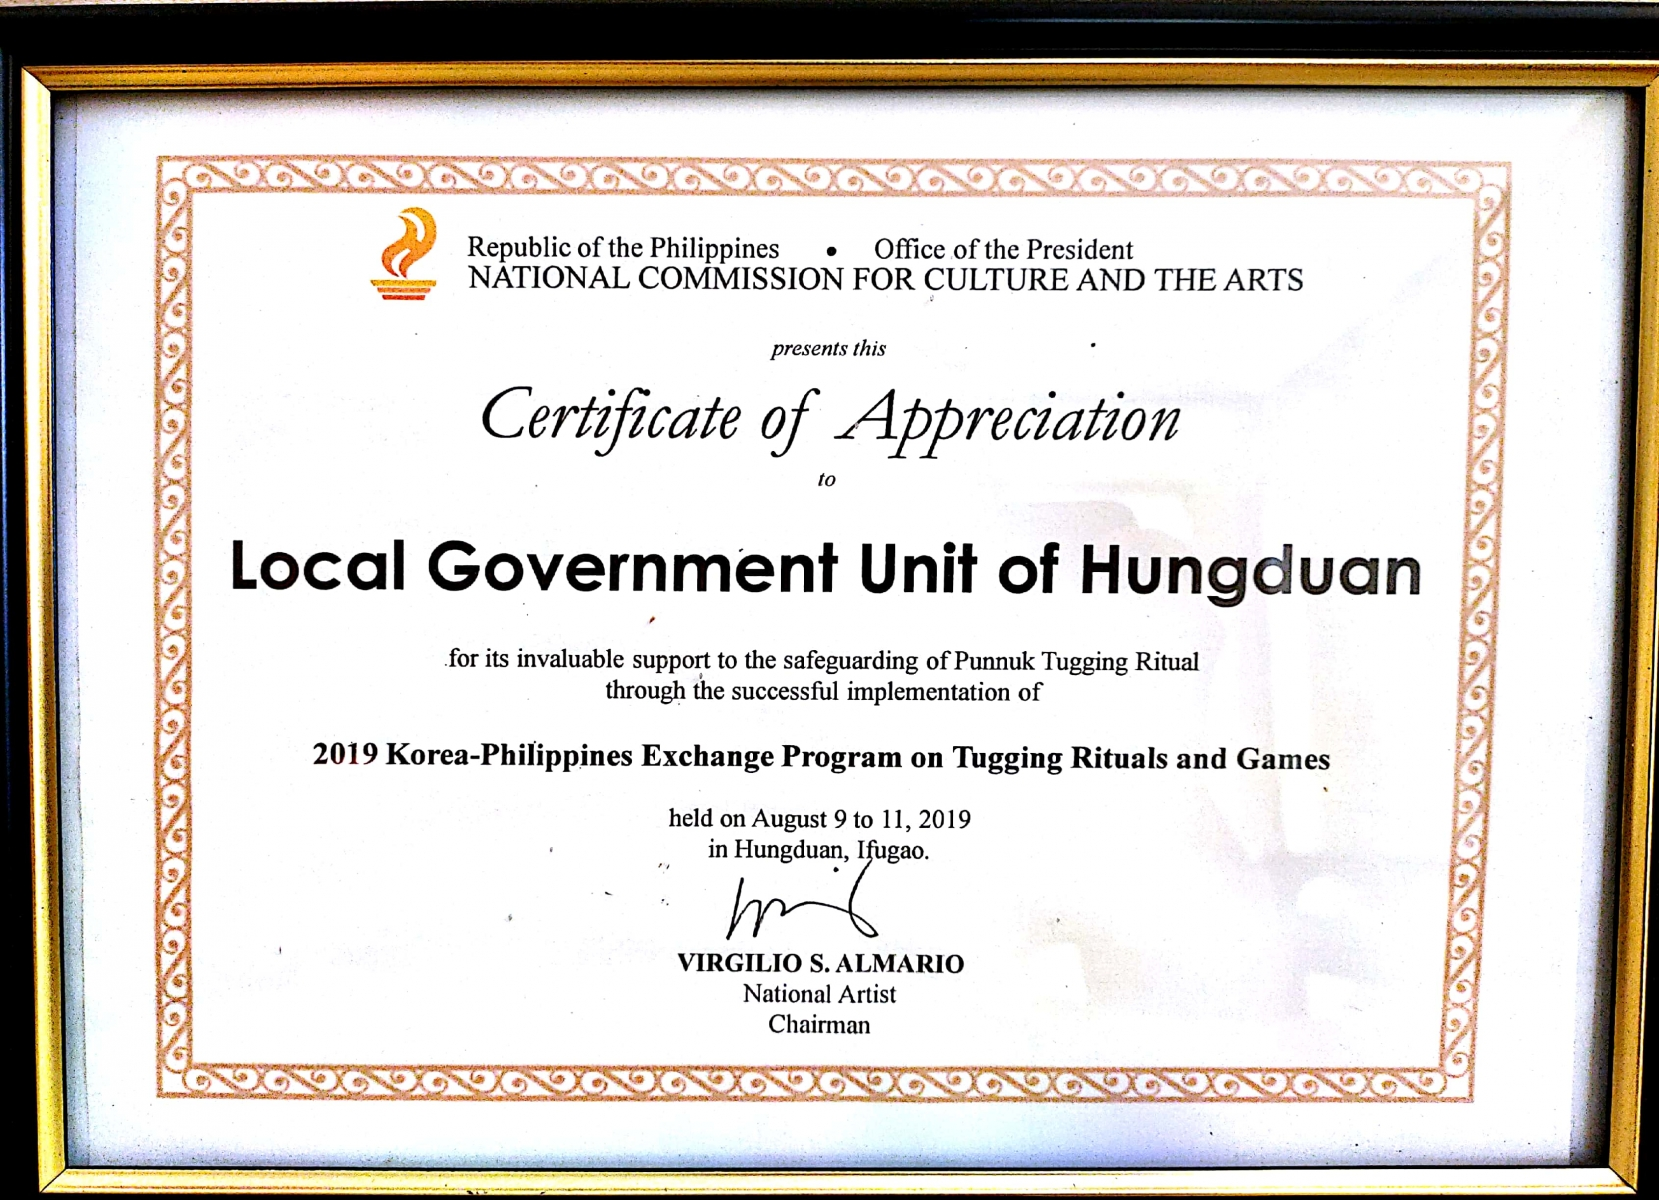 LGU-Hungduan-Awards_3